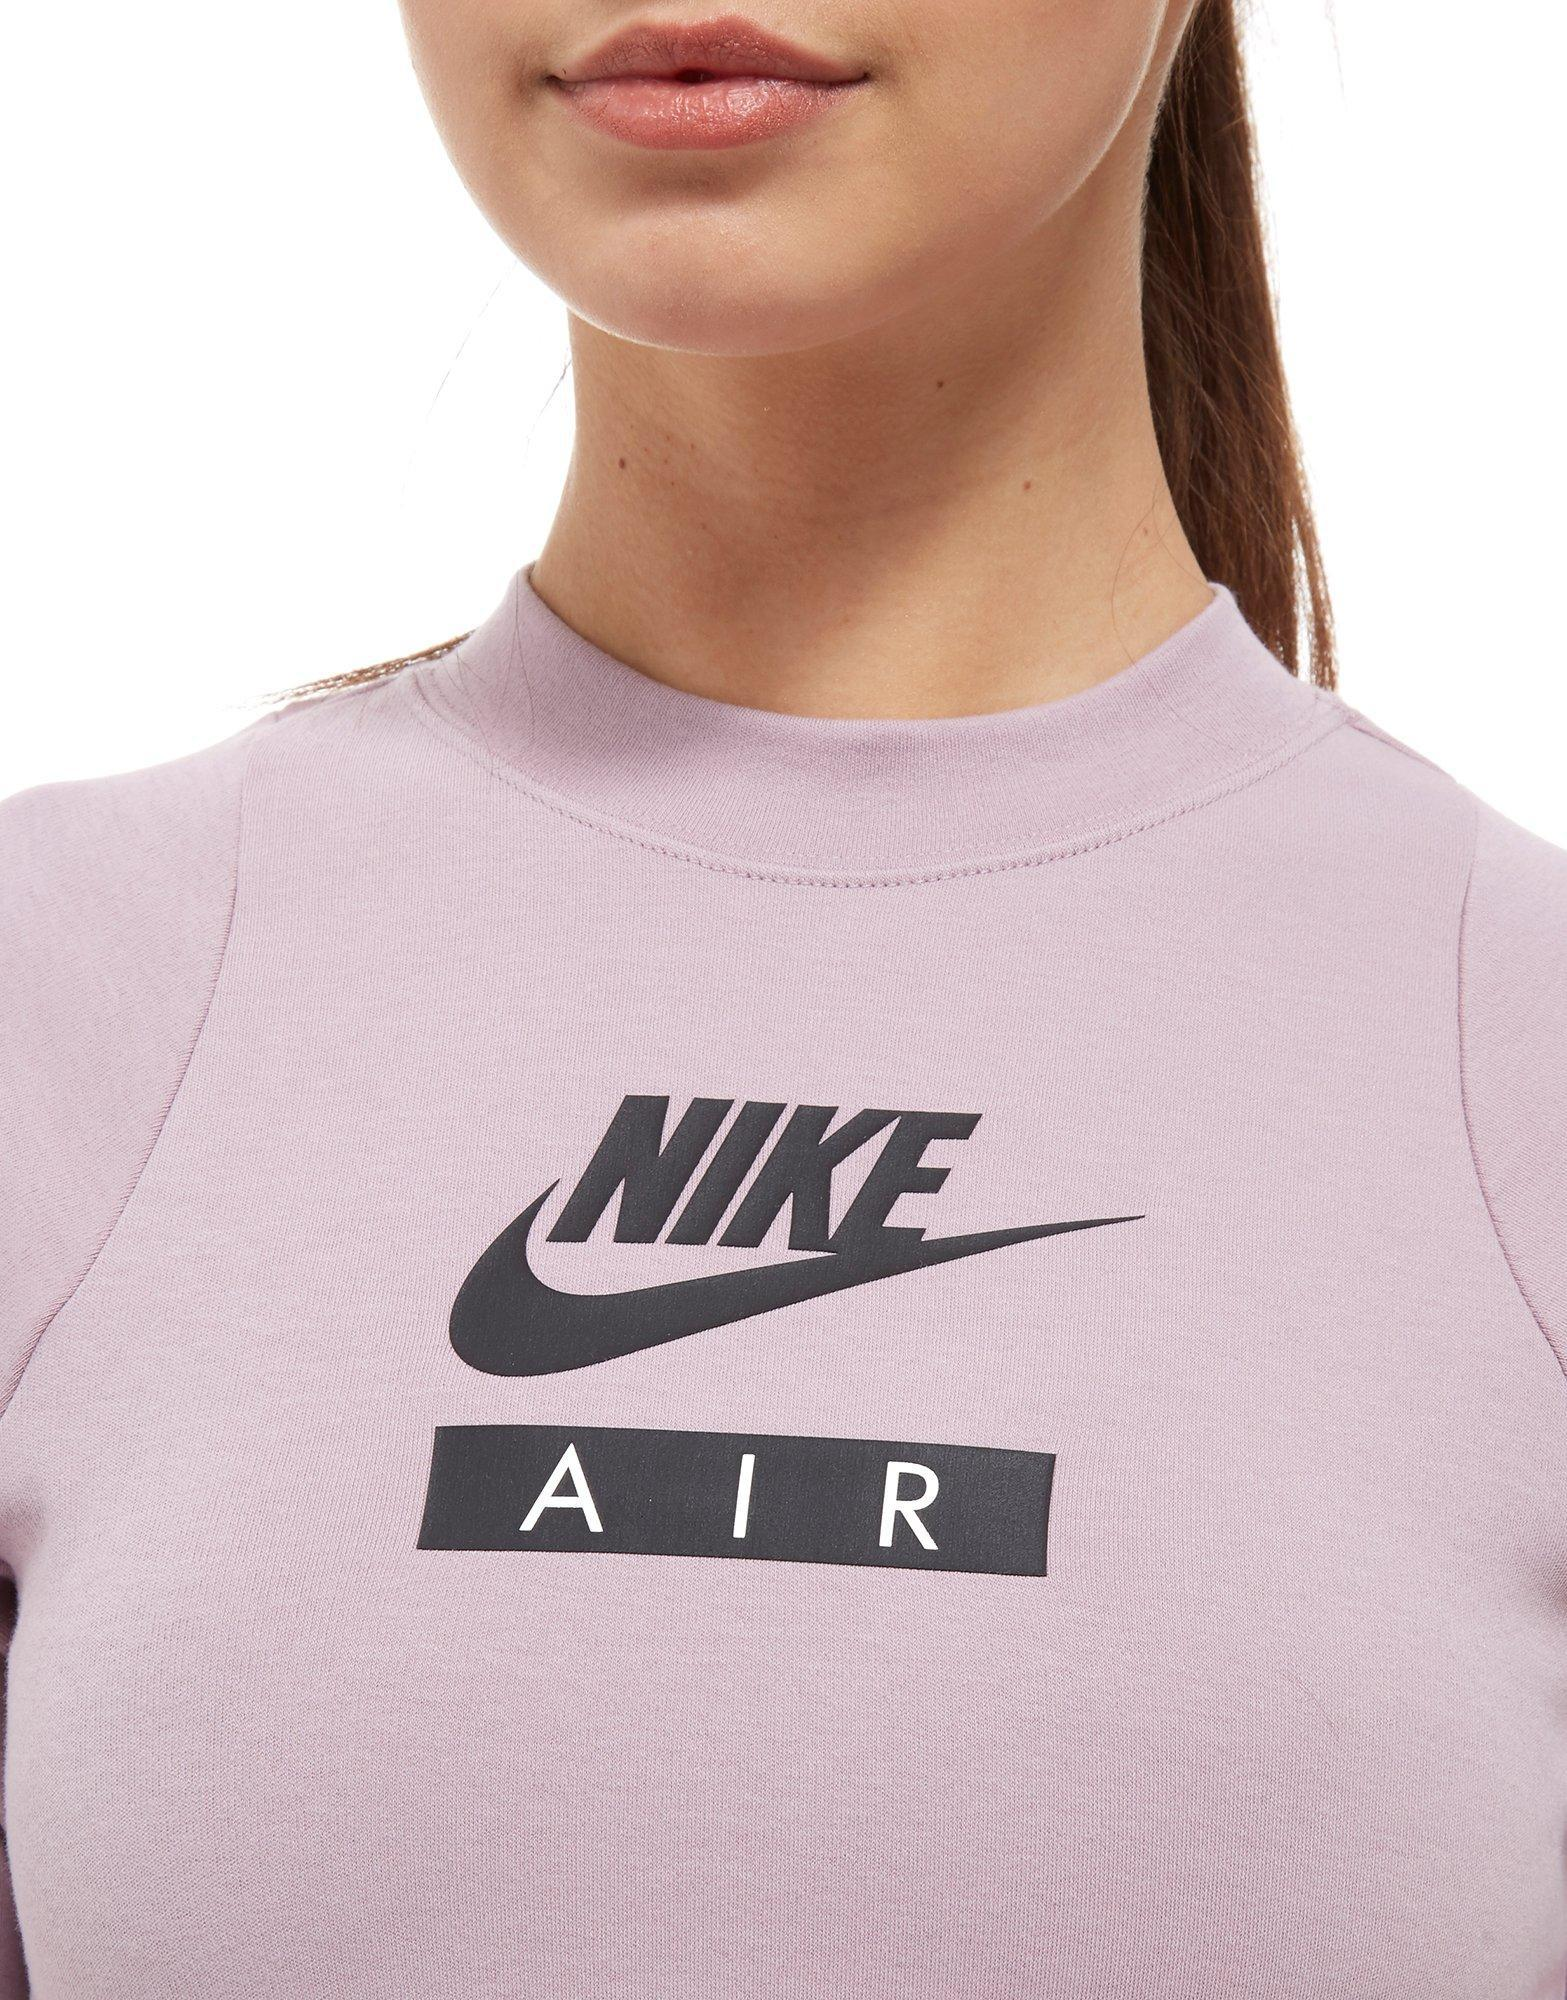 f6b34ef95bab3c Nike Air Long Sleeve Crop Top in Pink - Lyst